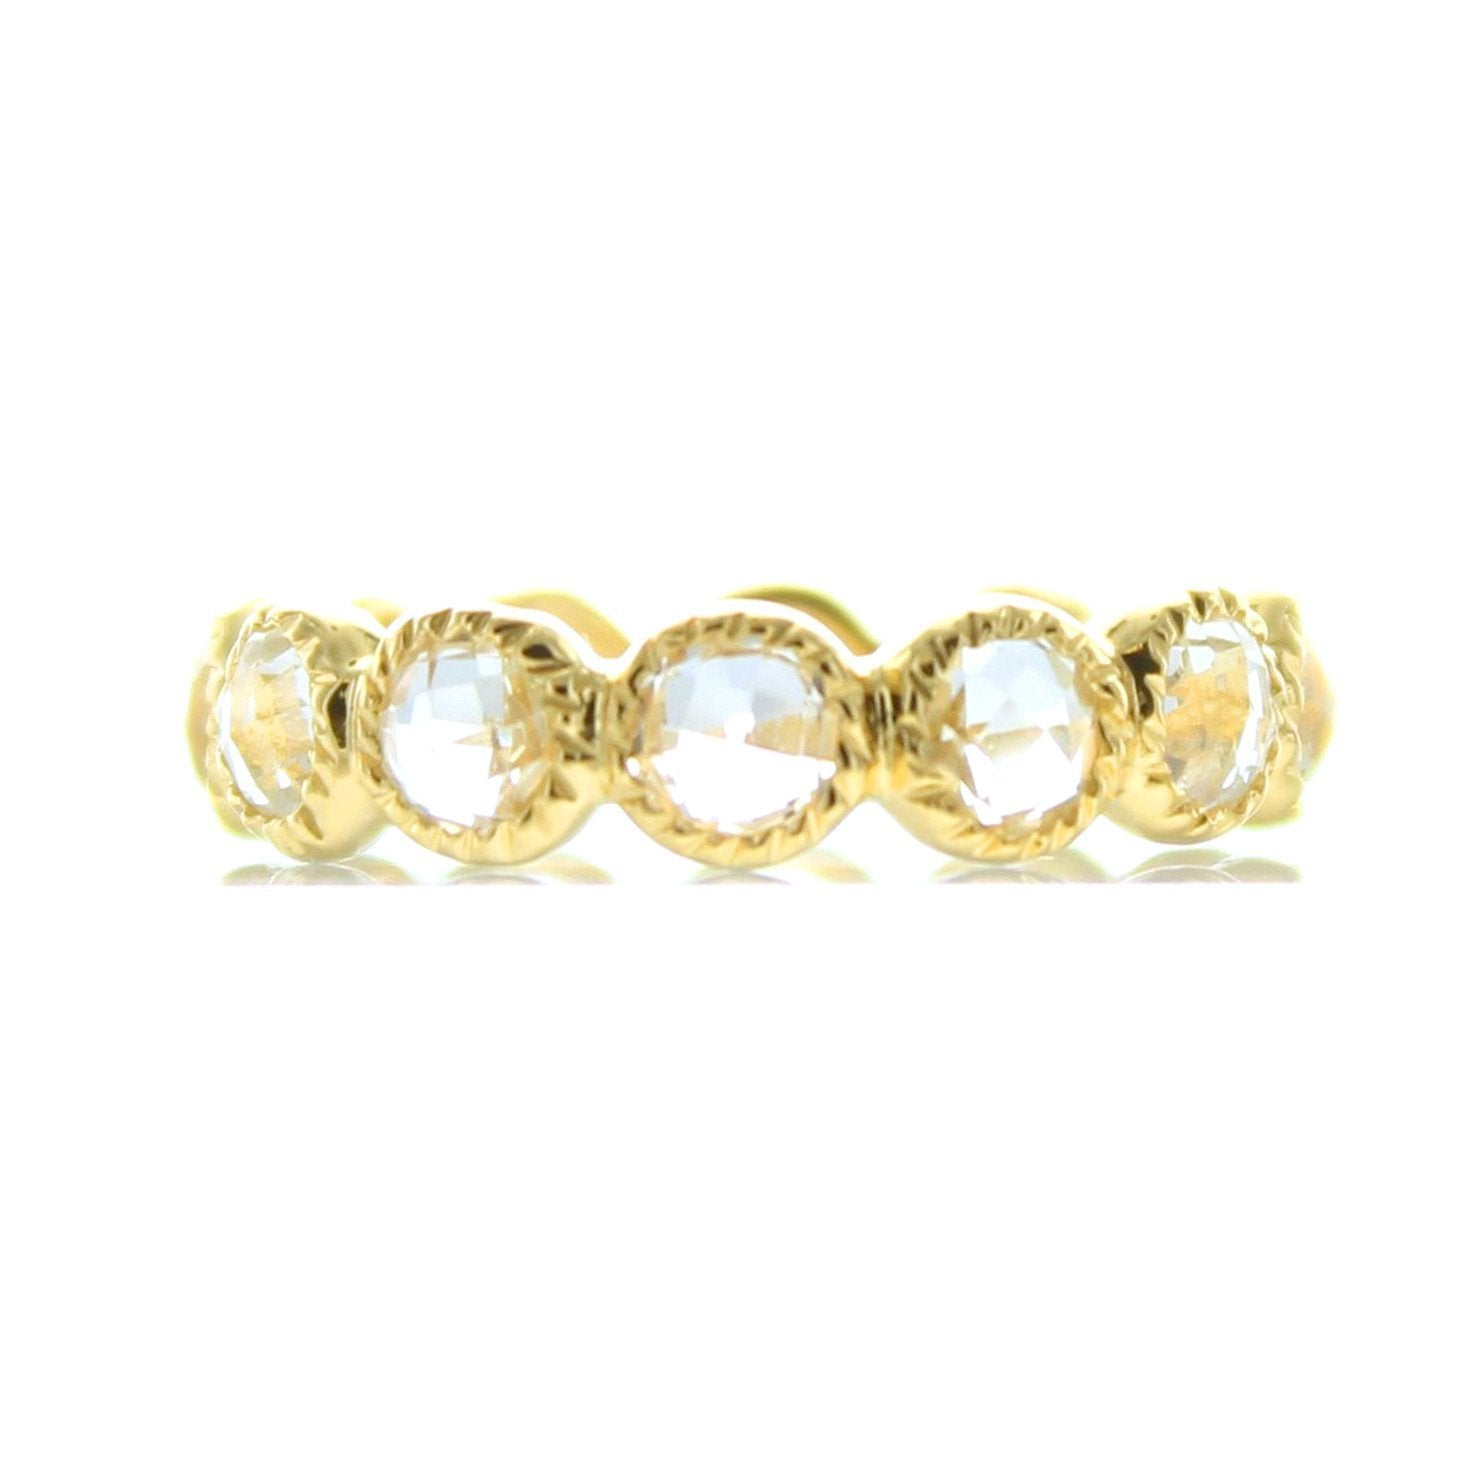 LEGACY RING WHITE TOPAZ & GOLD - SO PRETTY CARA COTTER